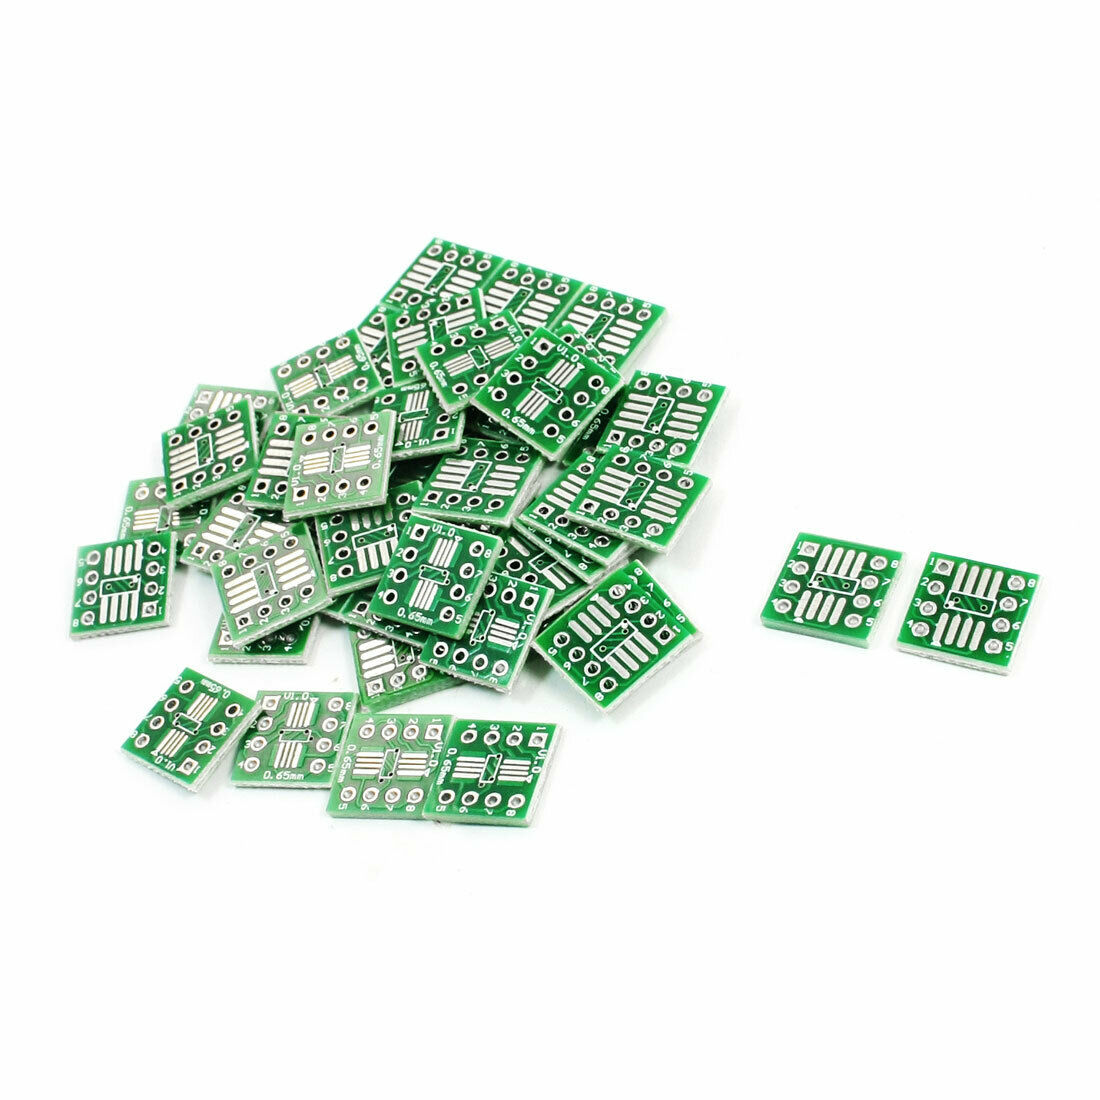 50pcs Smt Ic Sop8 065mm To Dip8 254mm Pcb Adapter Converter Antietching Circuit Board Ink Marker Pen For Diy Arduino 1 Of 1only Available